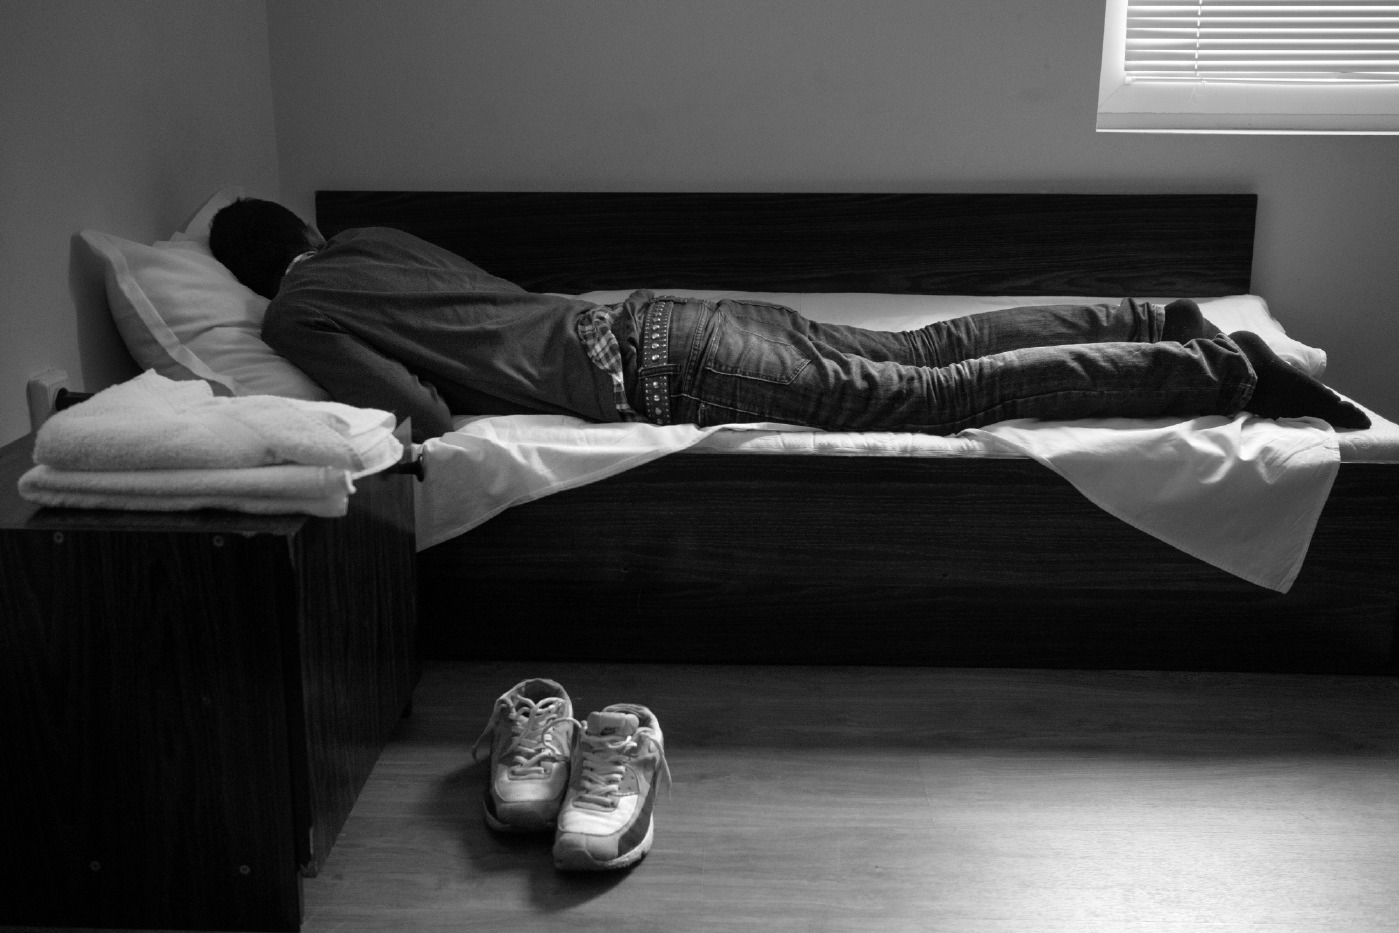 21-year-old Syrian refugee Mohamad Al Masalmeh rests in a hotel room in Sofia before to continue his journey through Romania. Sofia, Bulgaria 2014. © Matteo Bastianelli